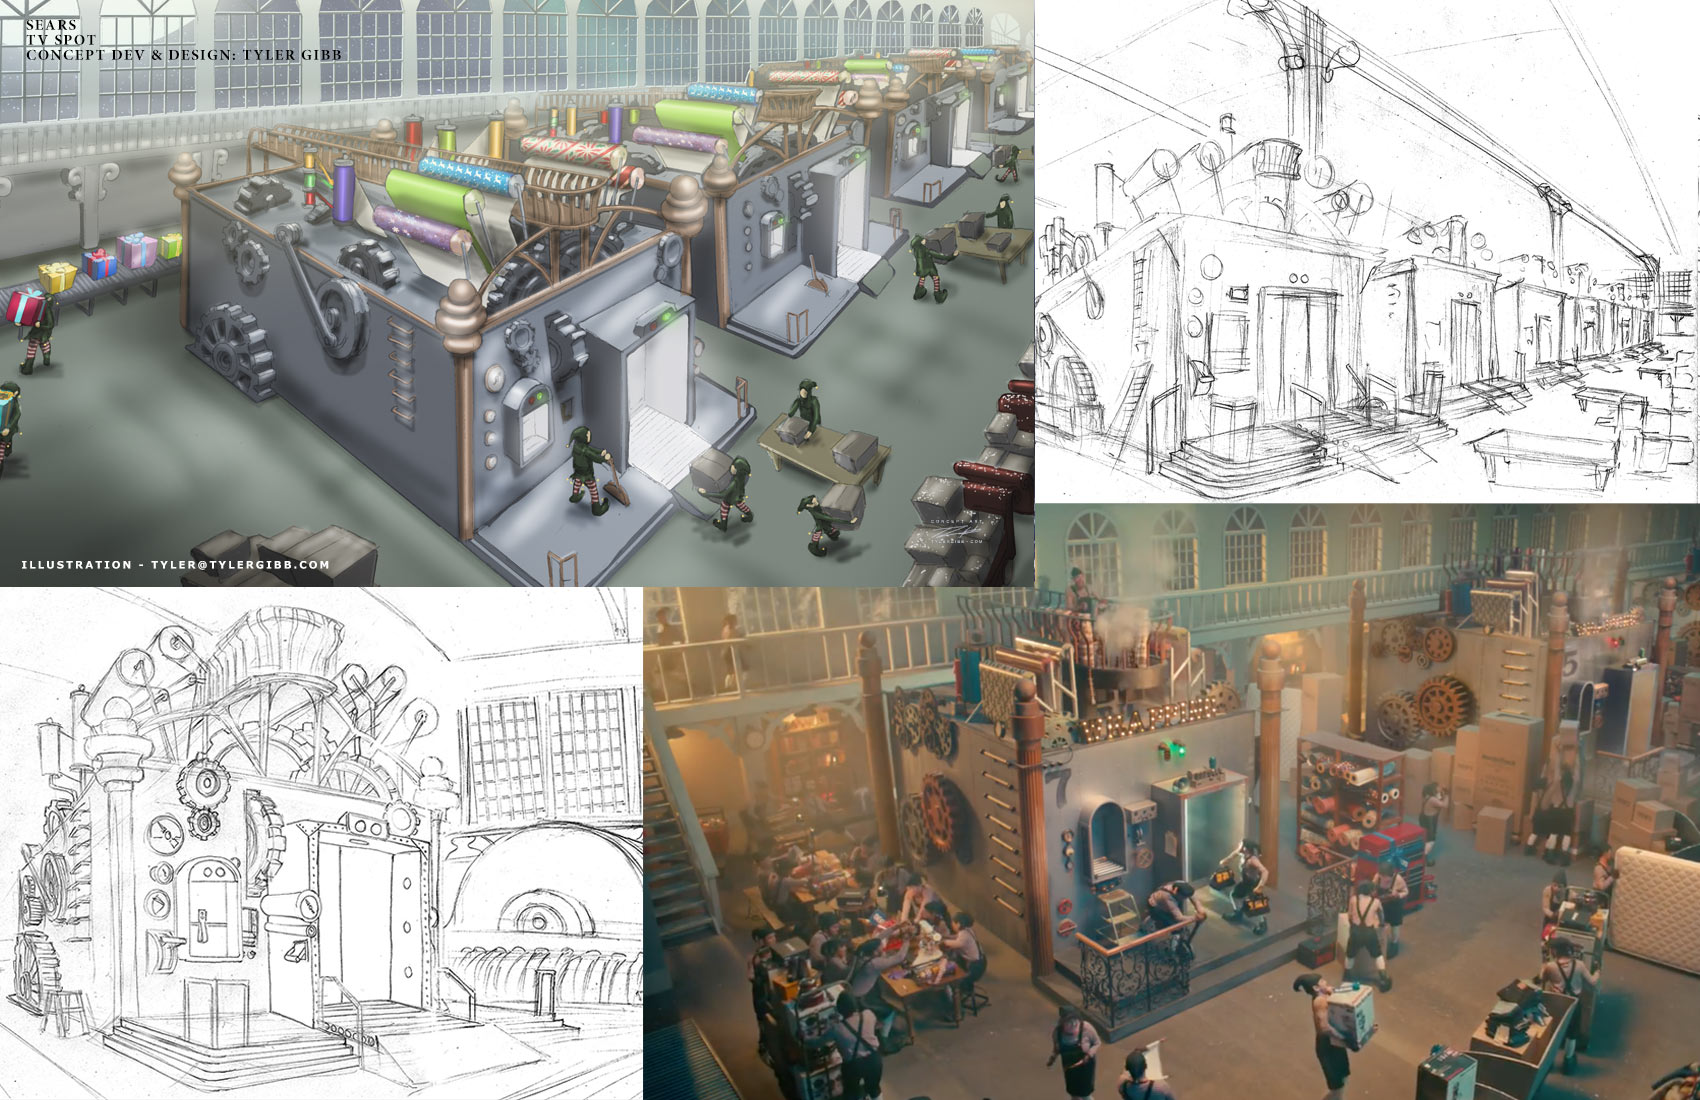 Tyler Gibb Previs Storyboards Concept Design And Concept Art Illustration Portfolio For Pre